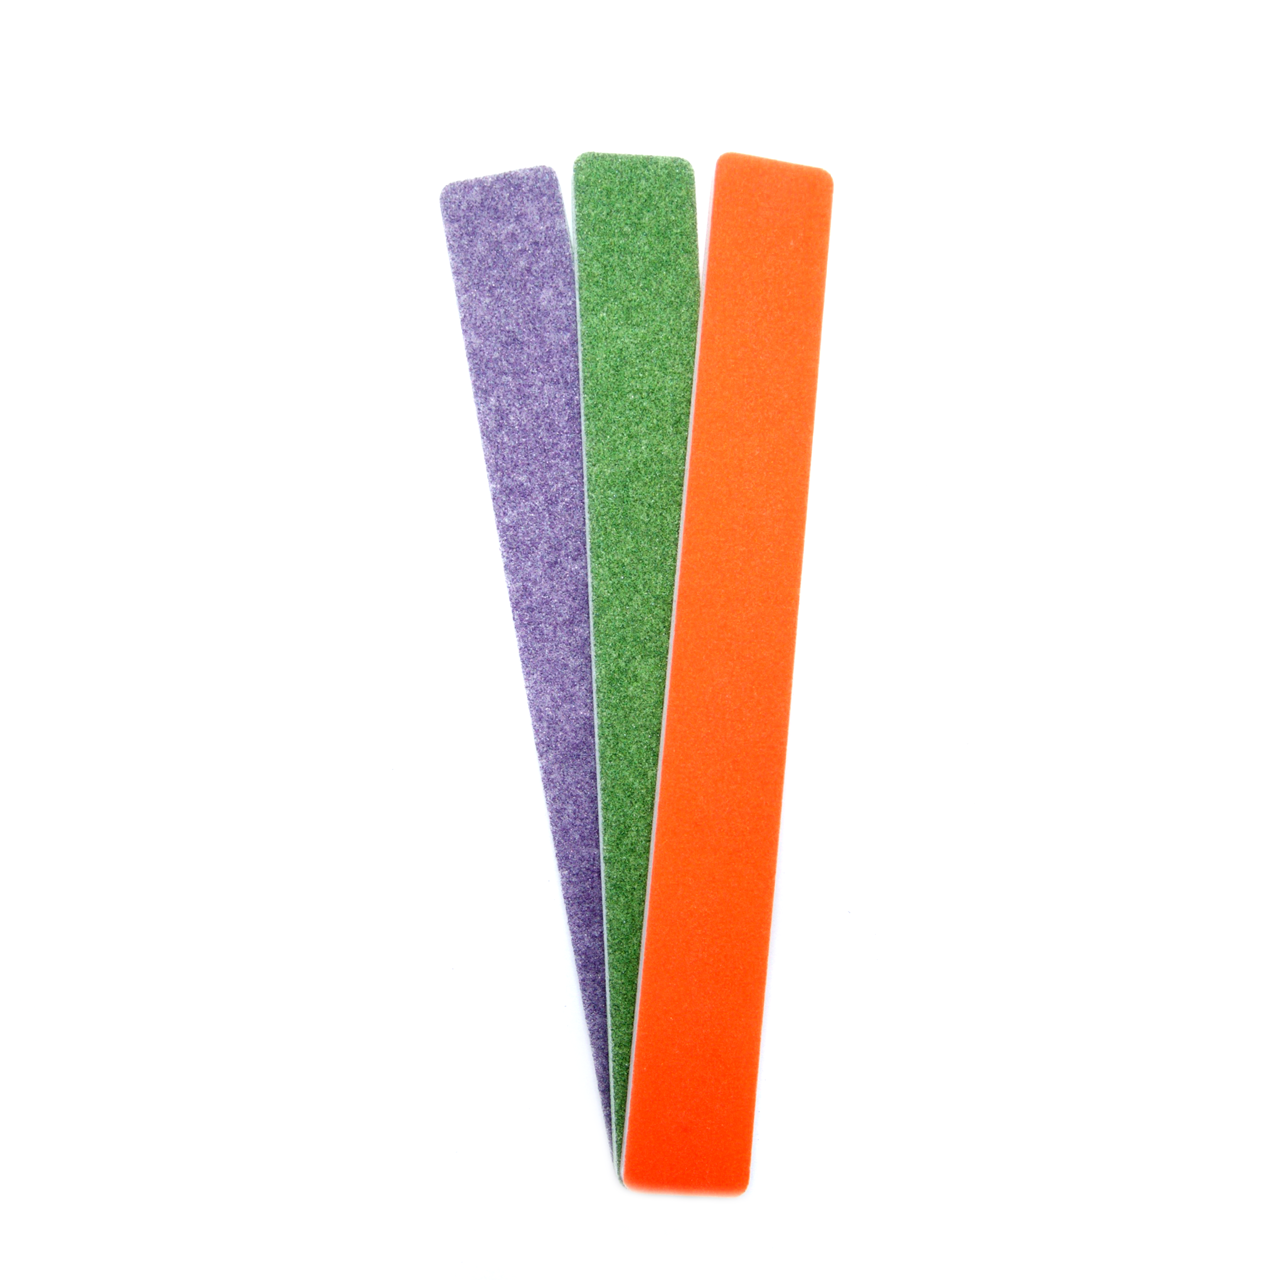 """Sanding Files 3/4"""" - Assorted Selection Pack - Crafty Cat"""